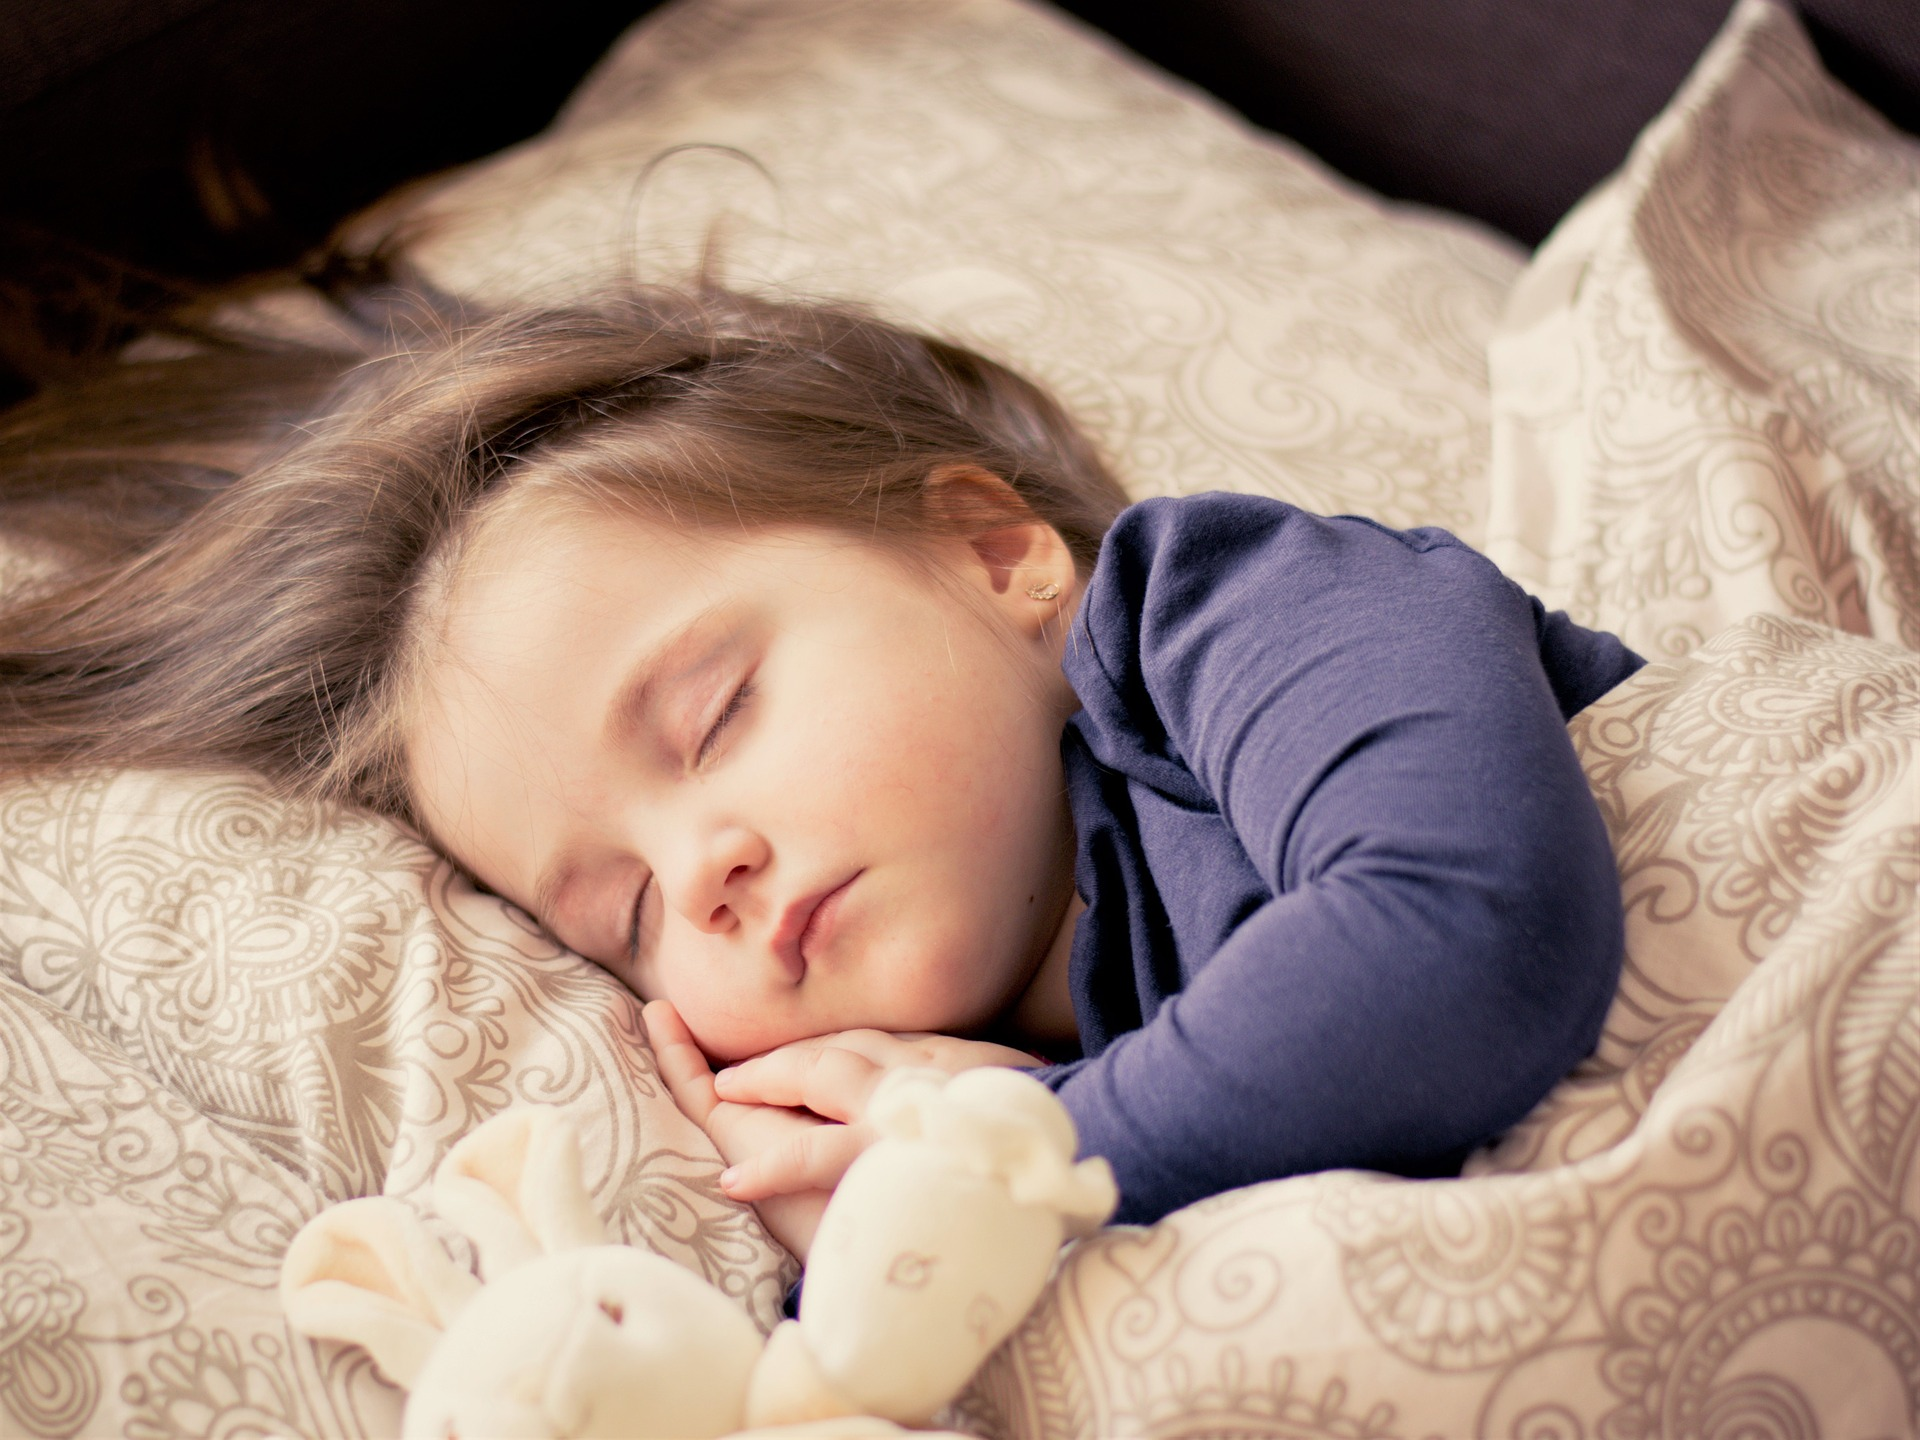 dutch babies sleep better (than you) – stuff dutch people like